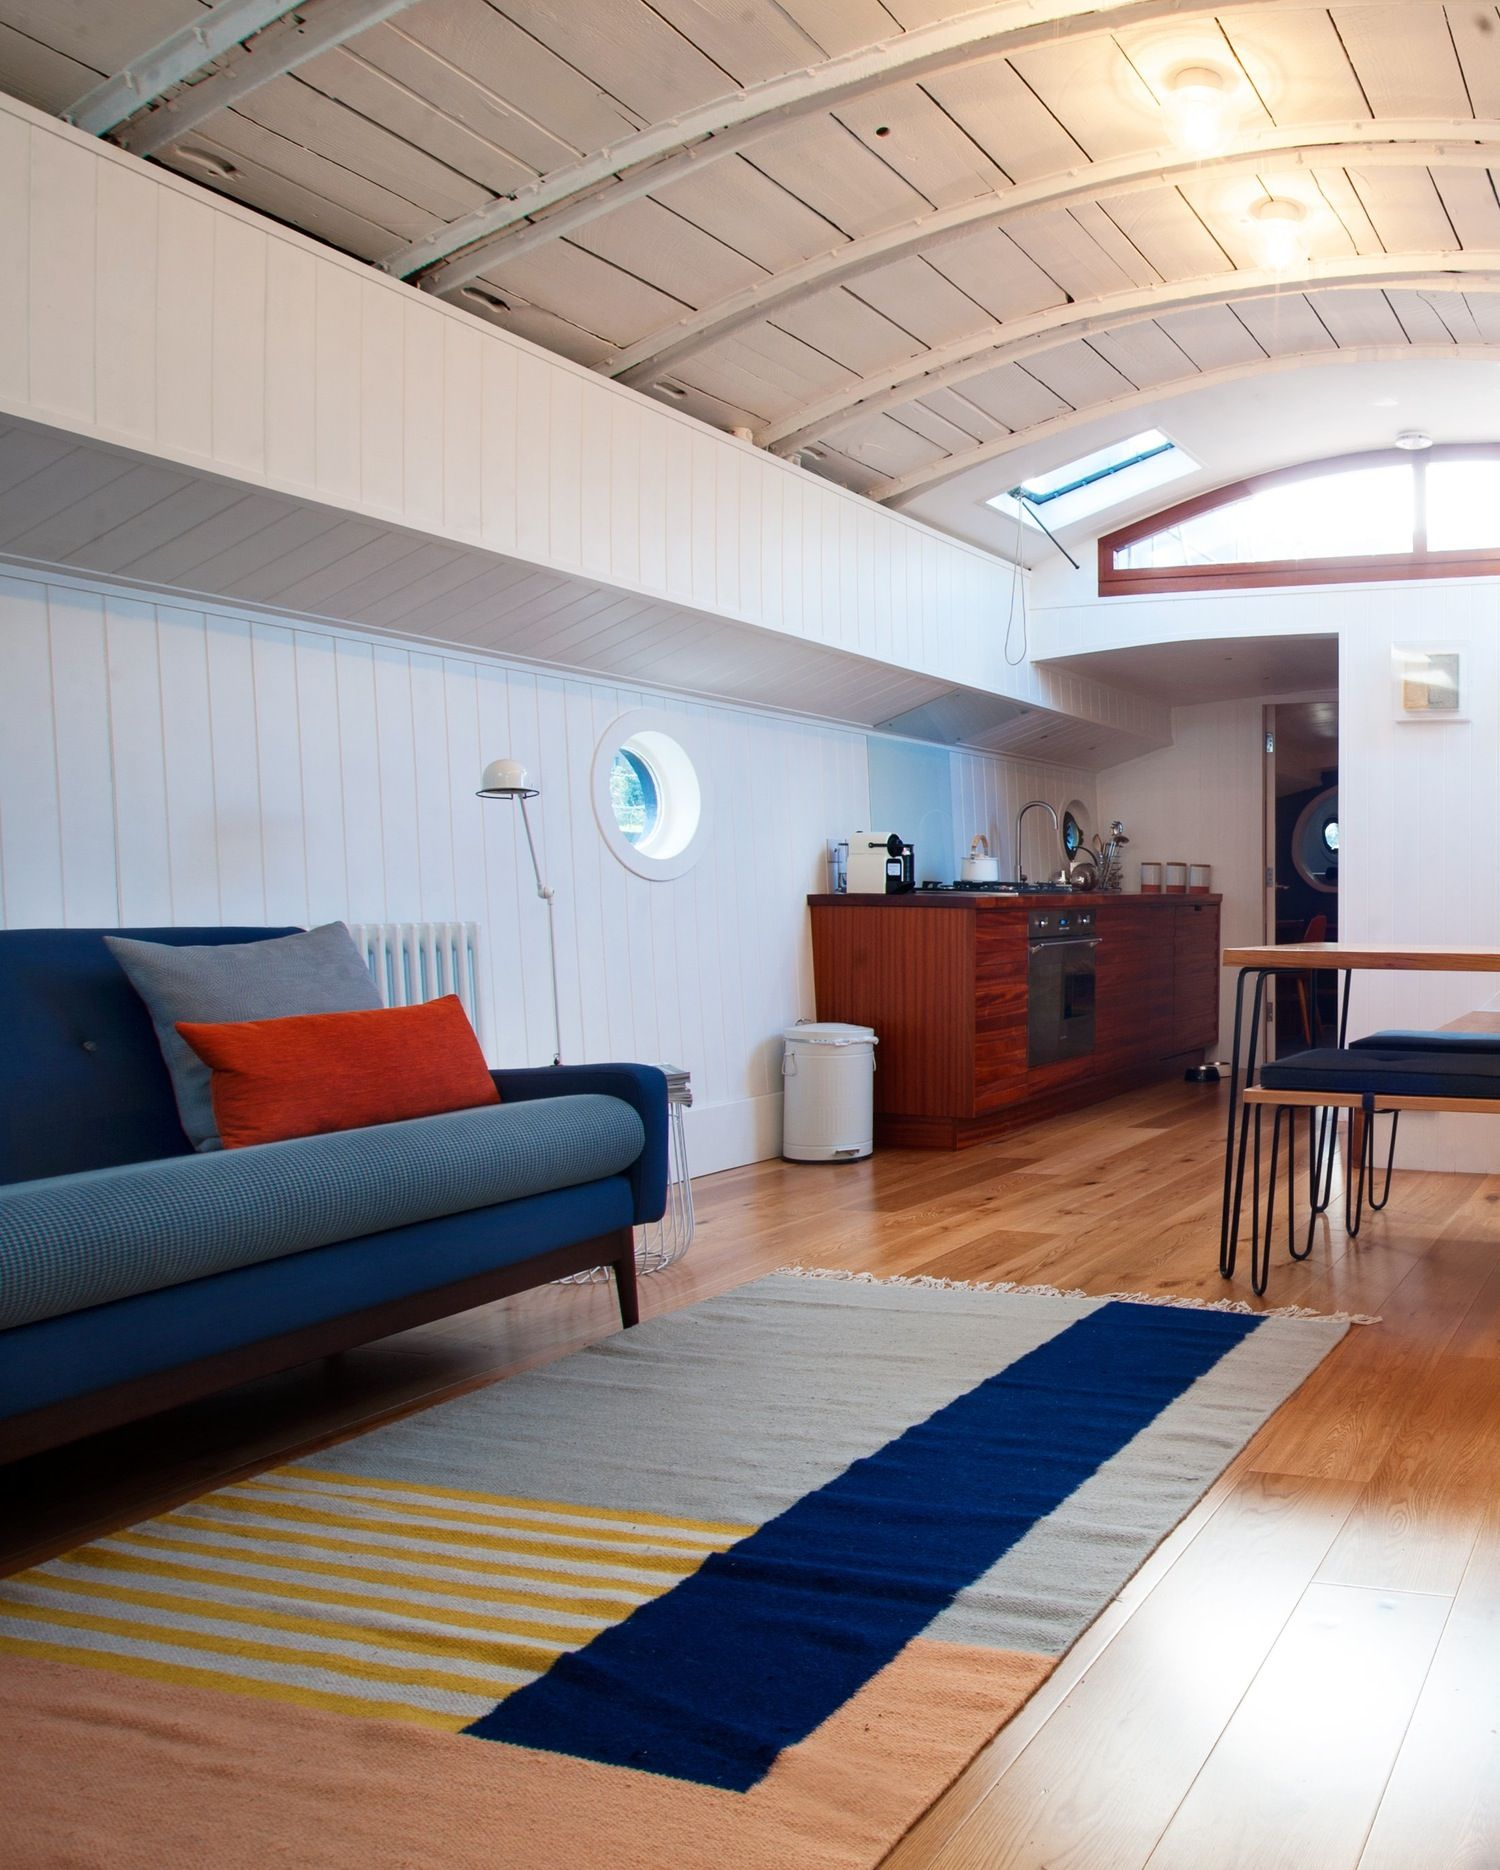 Garys recently restored 1925 houseboat in london house tour